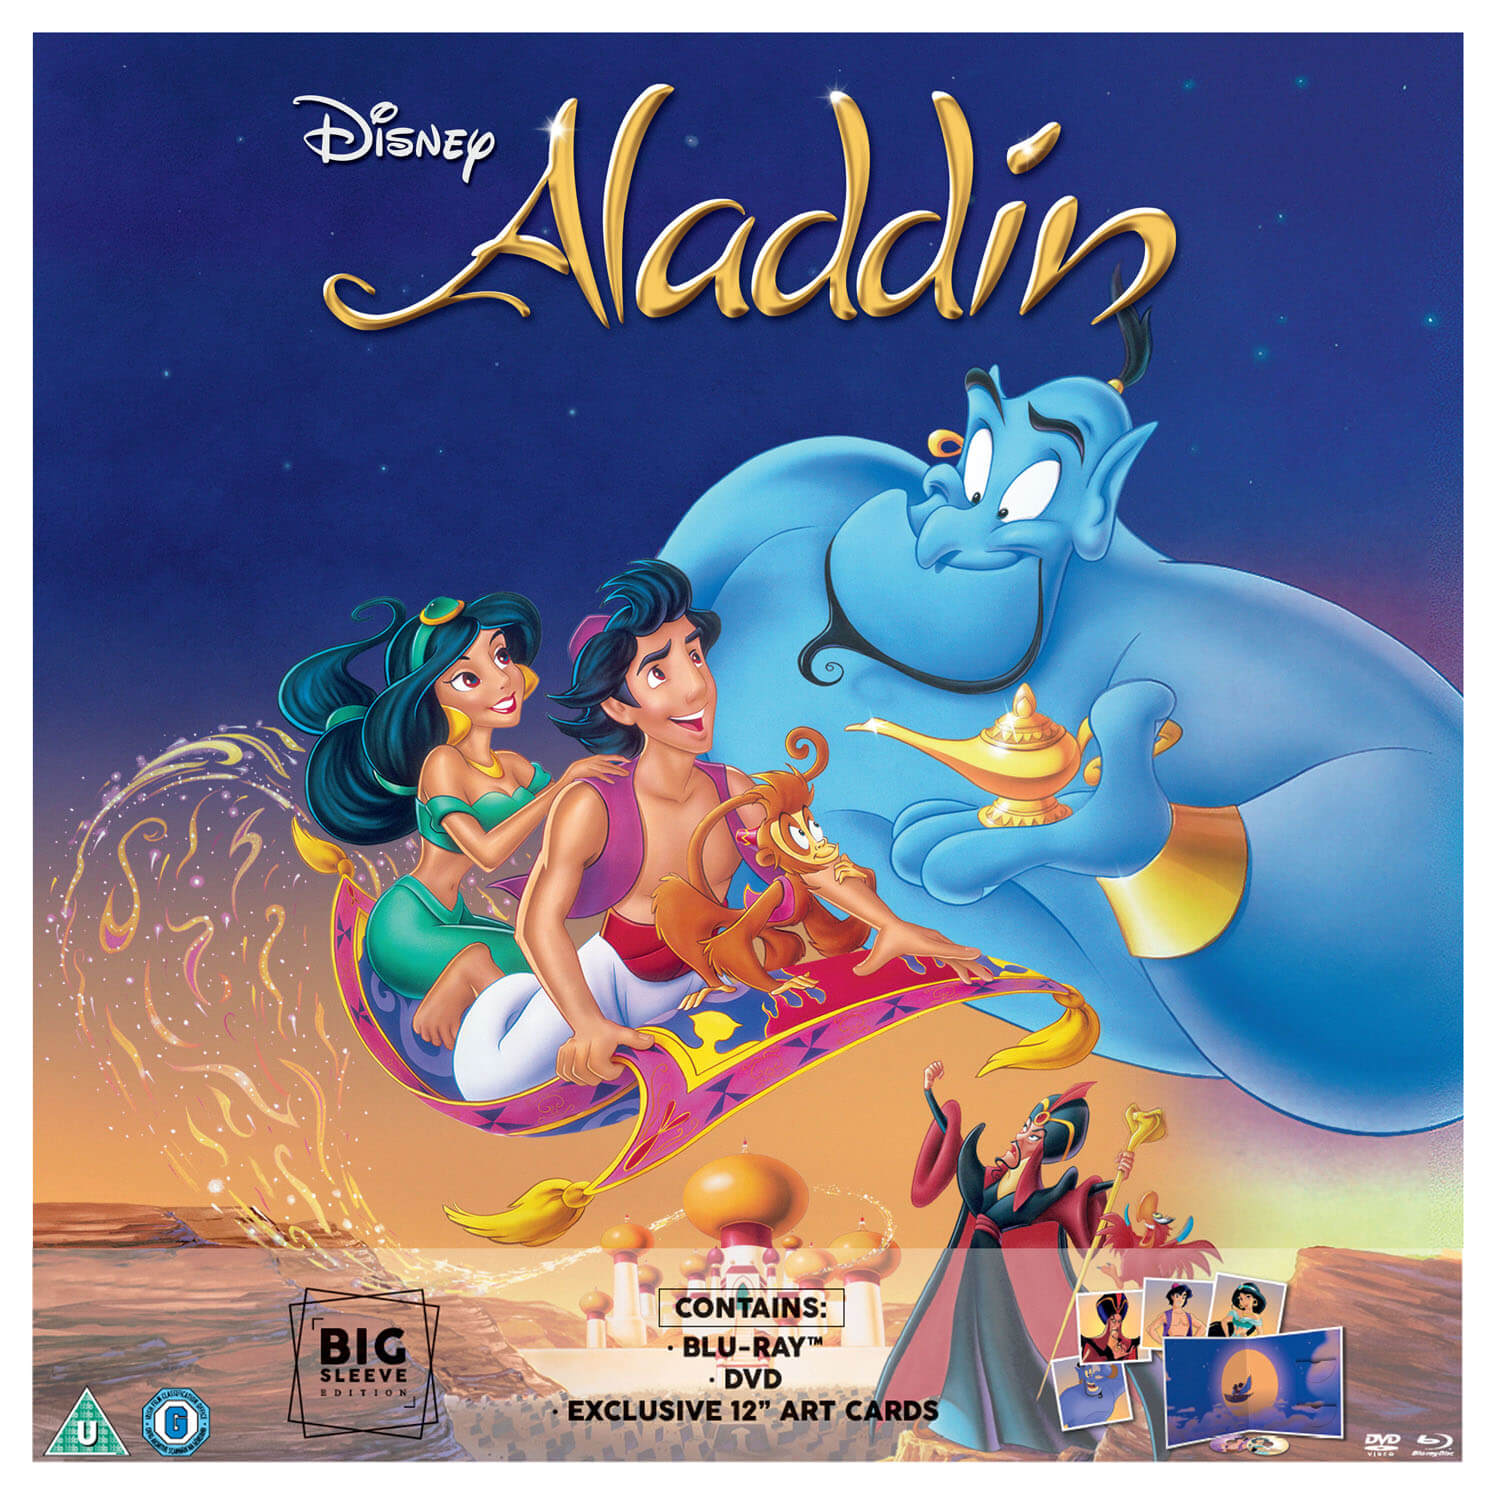 Aladdin - Big Sleeve Edition